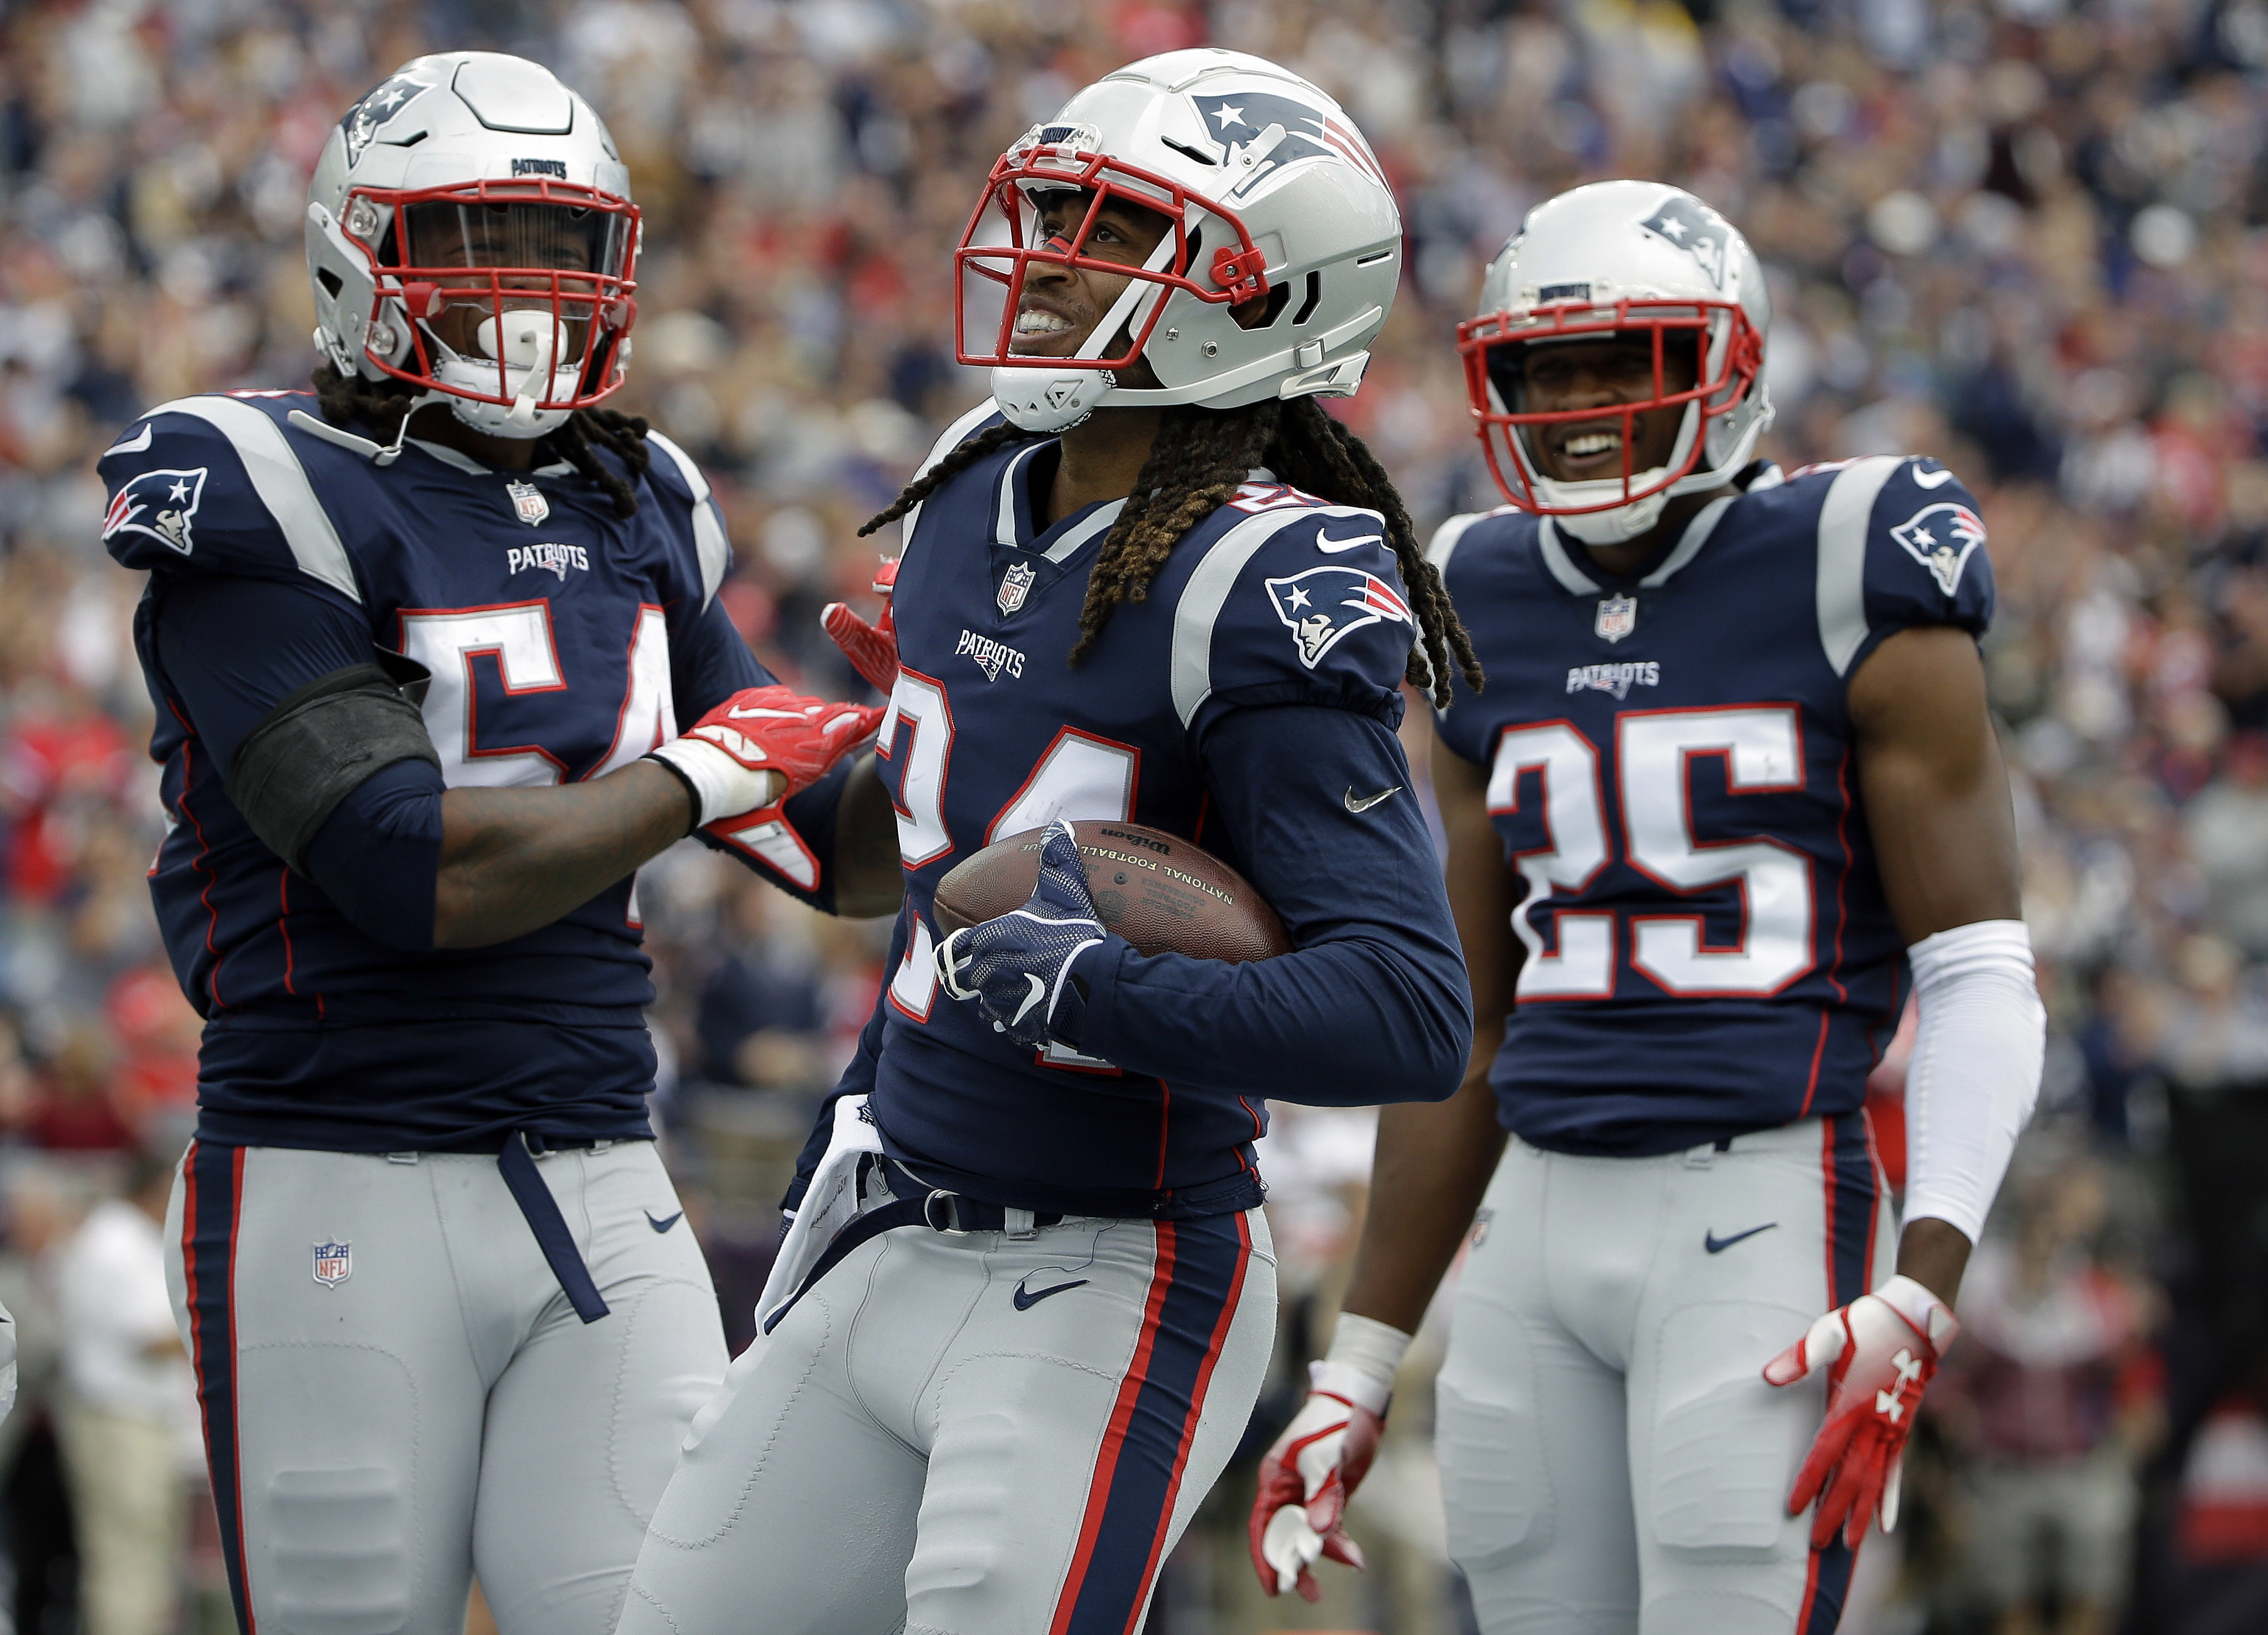 Gilmore has quietly made major noise in Pats' Super Bowl run